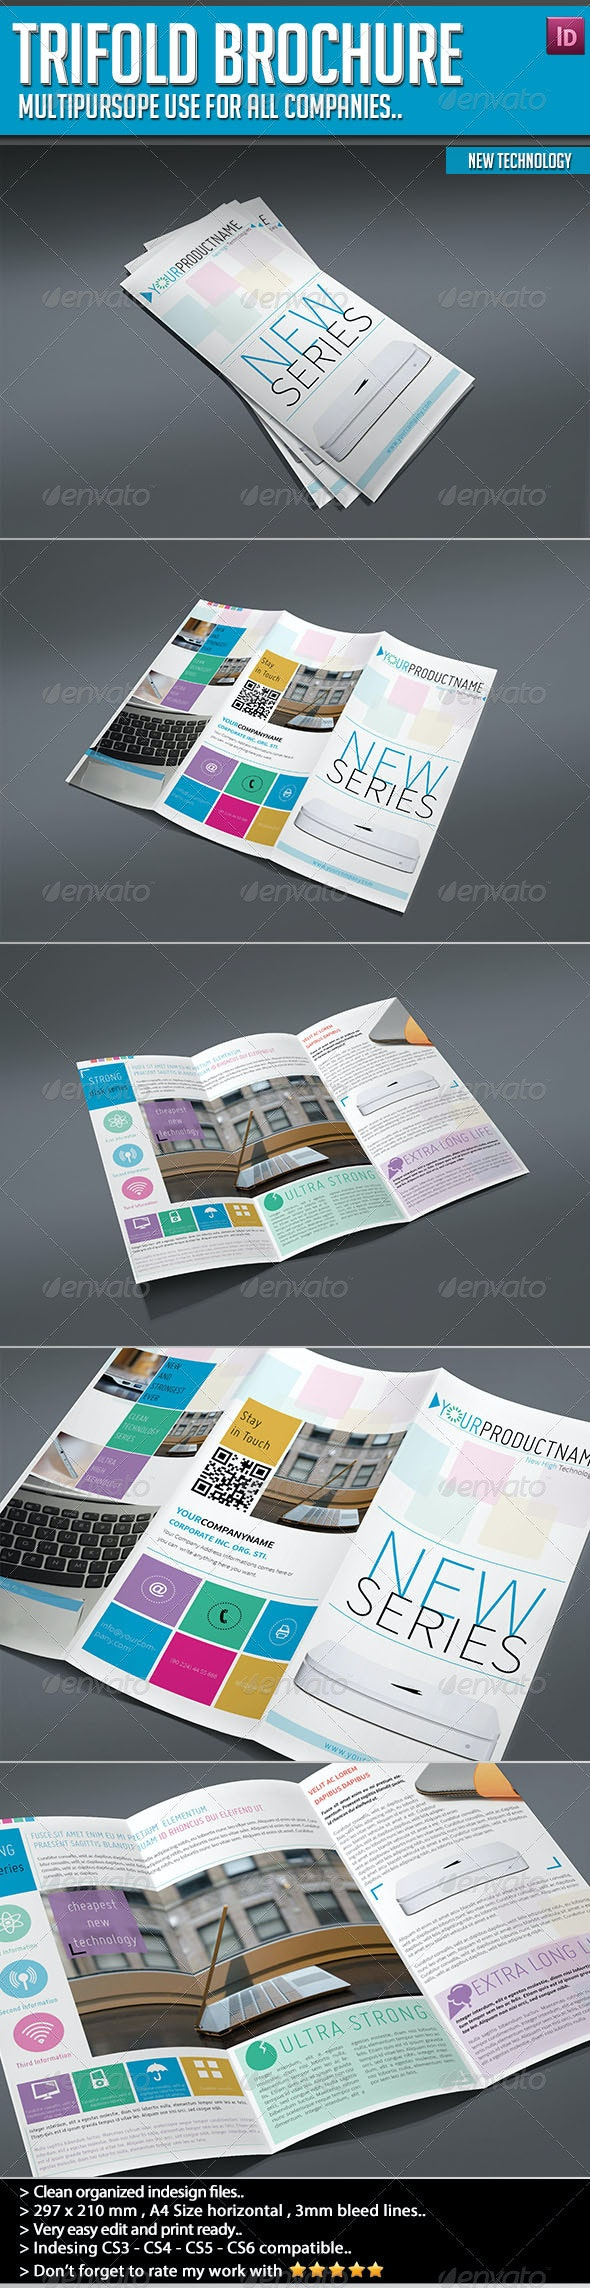 Trifold Brochure - New Technology - Informational Brochures